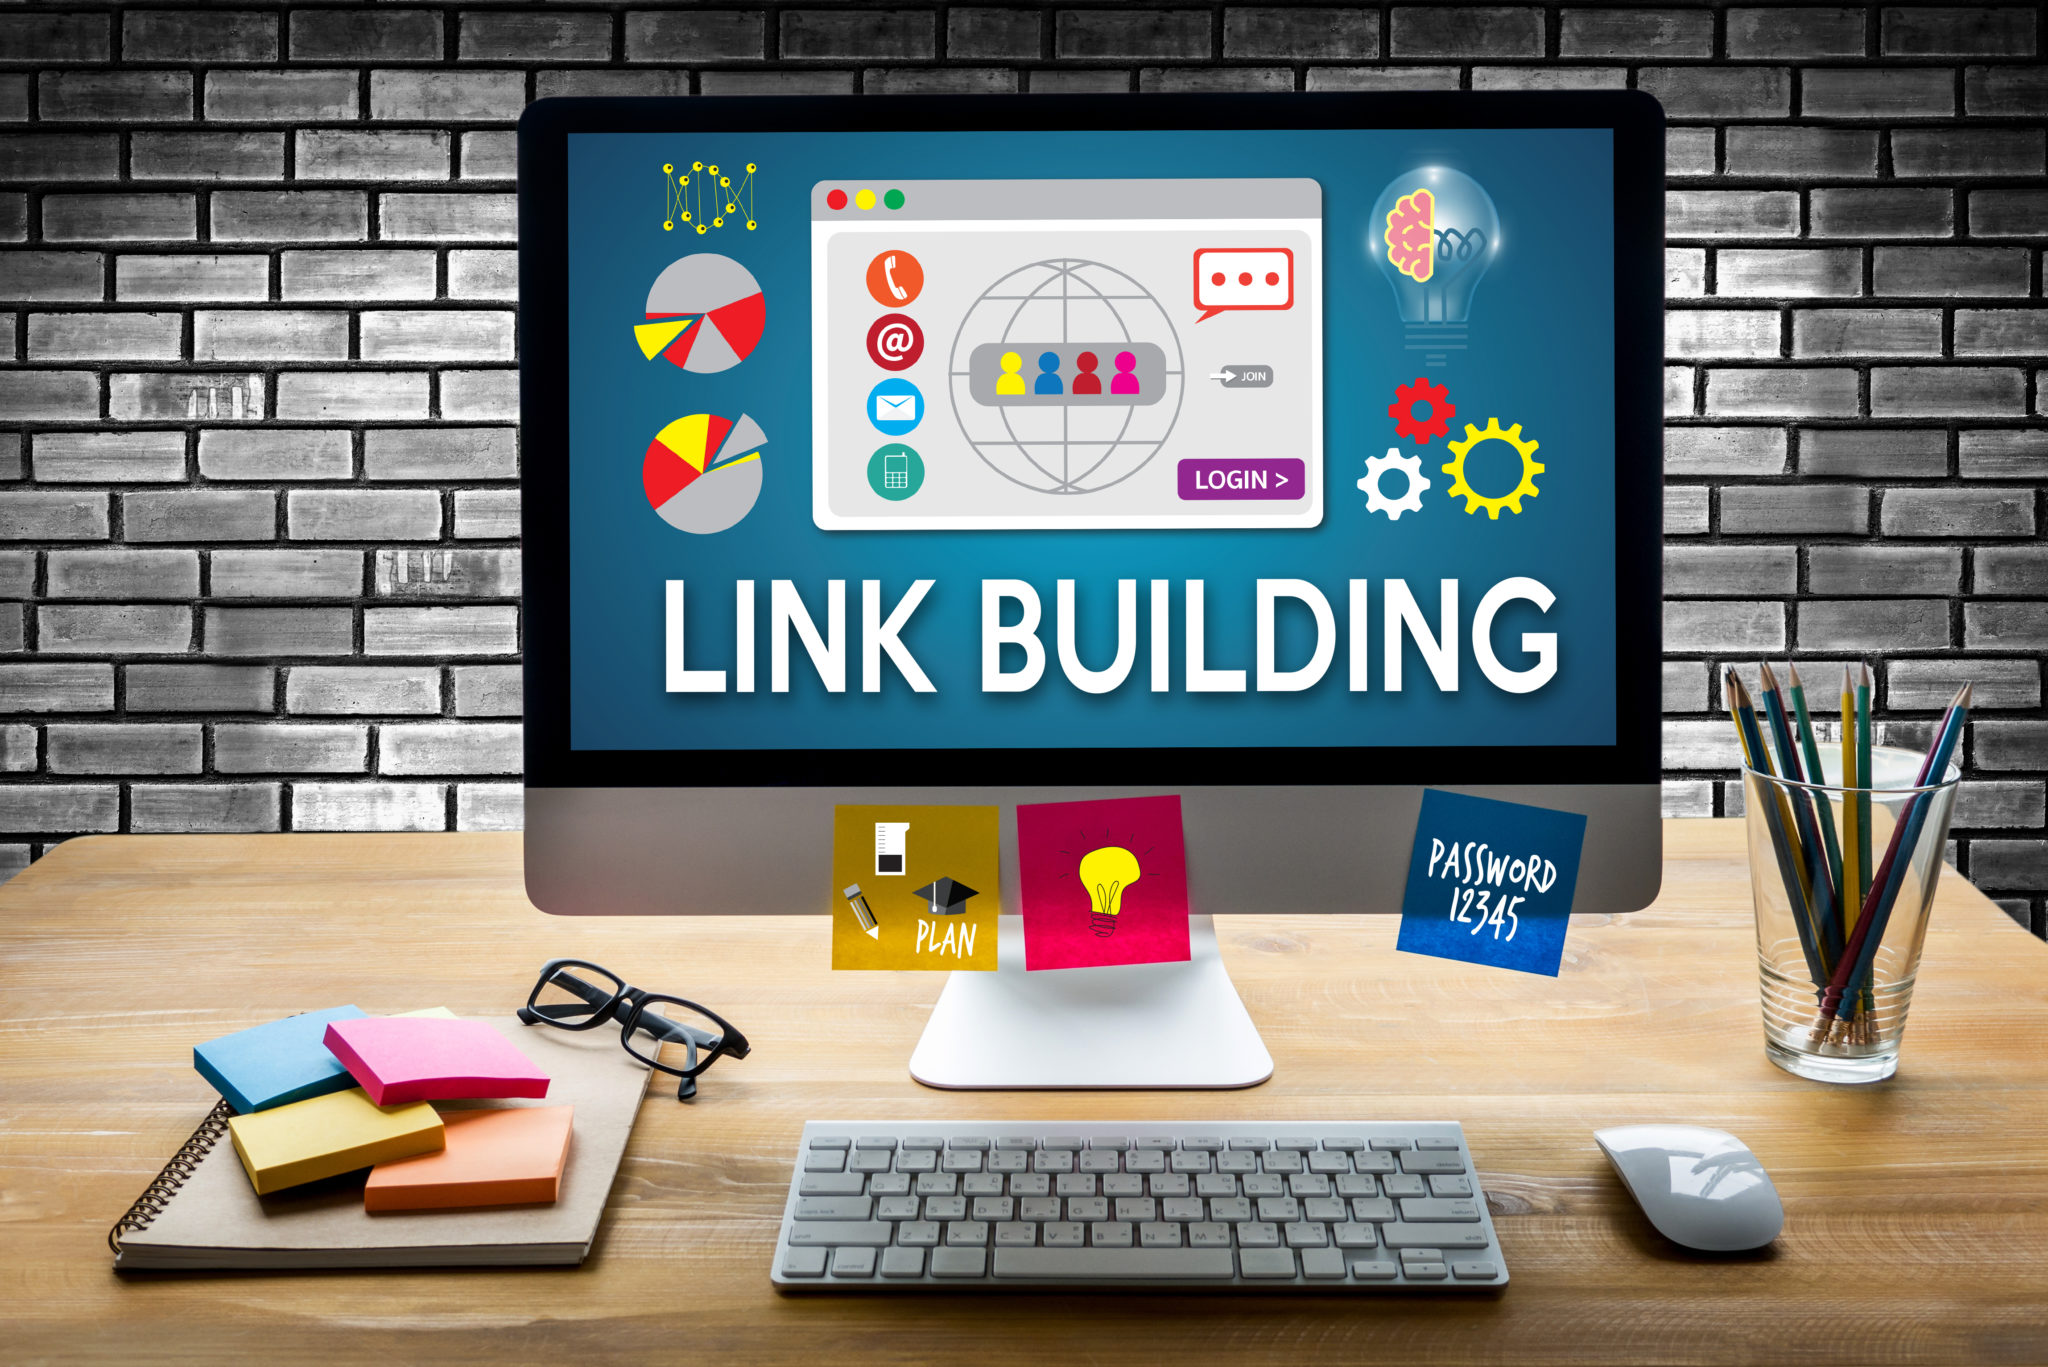 Link Building 101 for Your Content Marketing